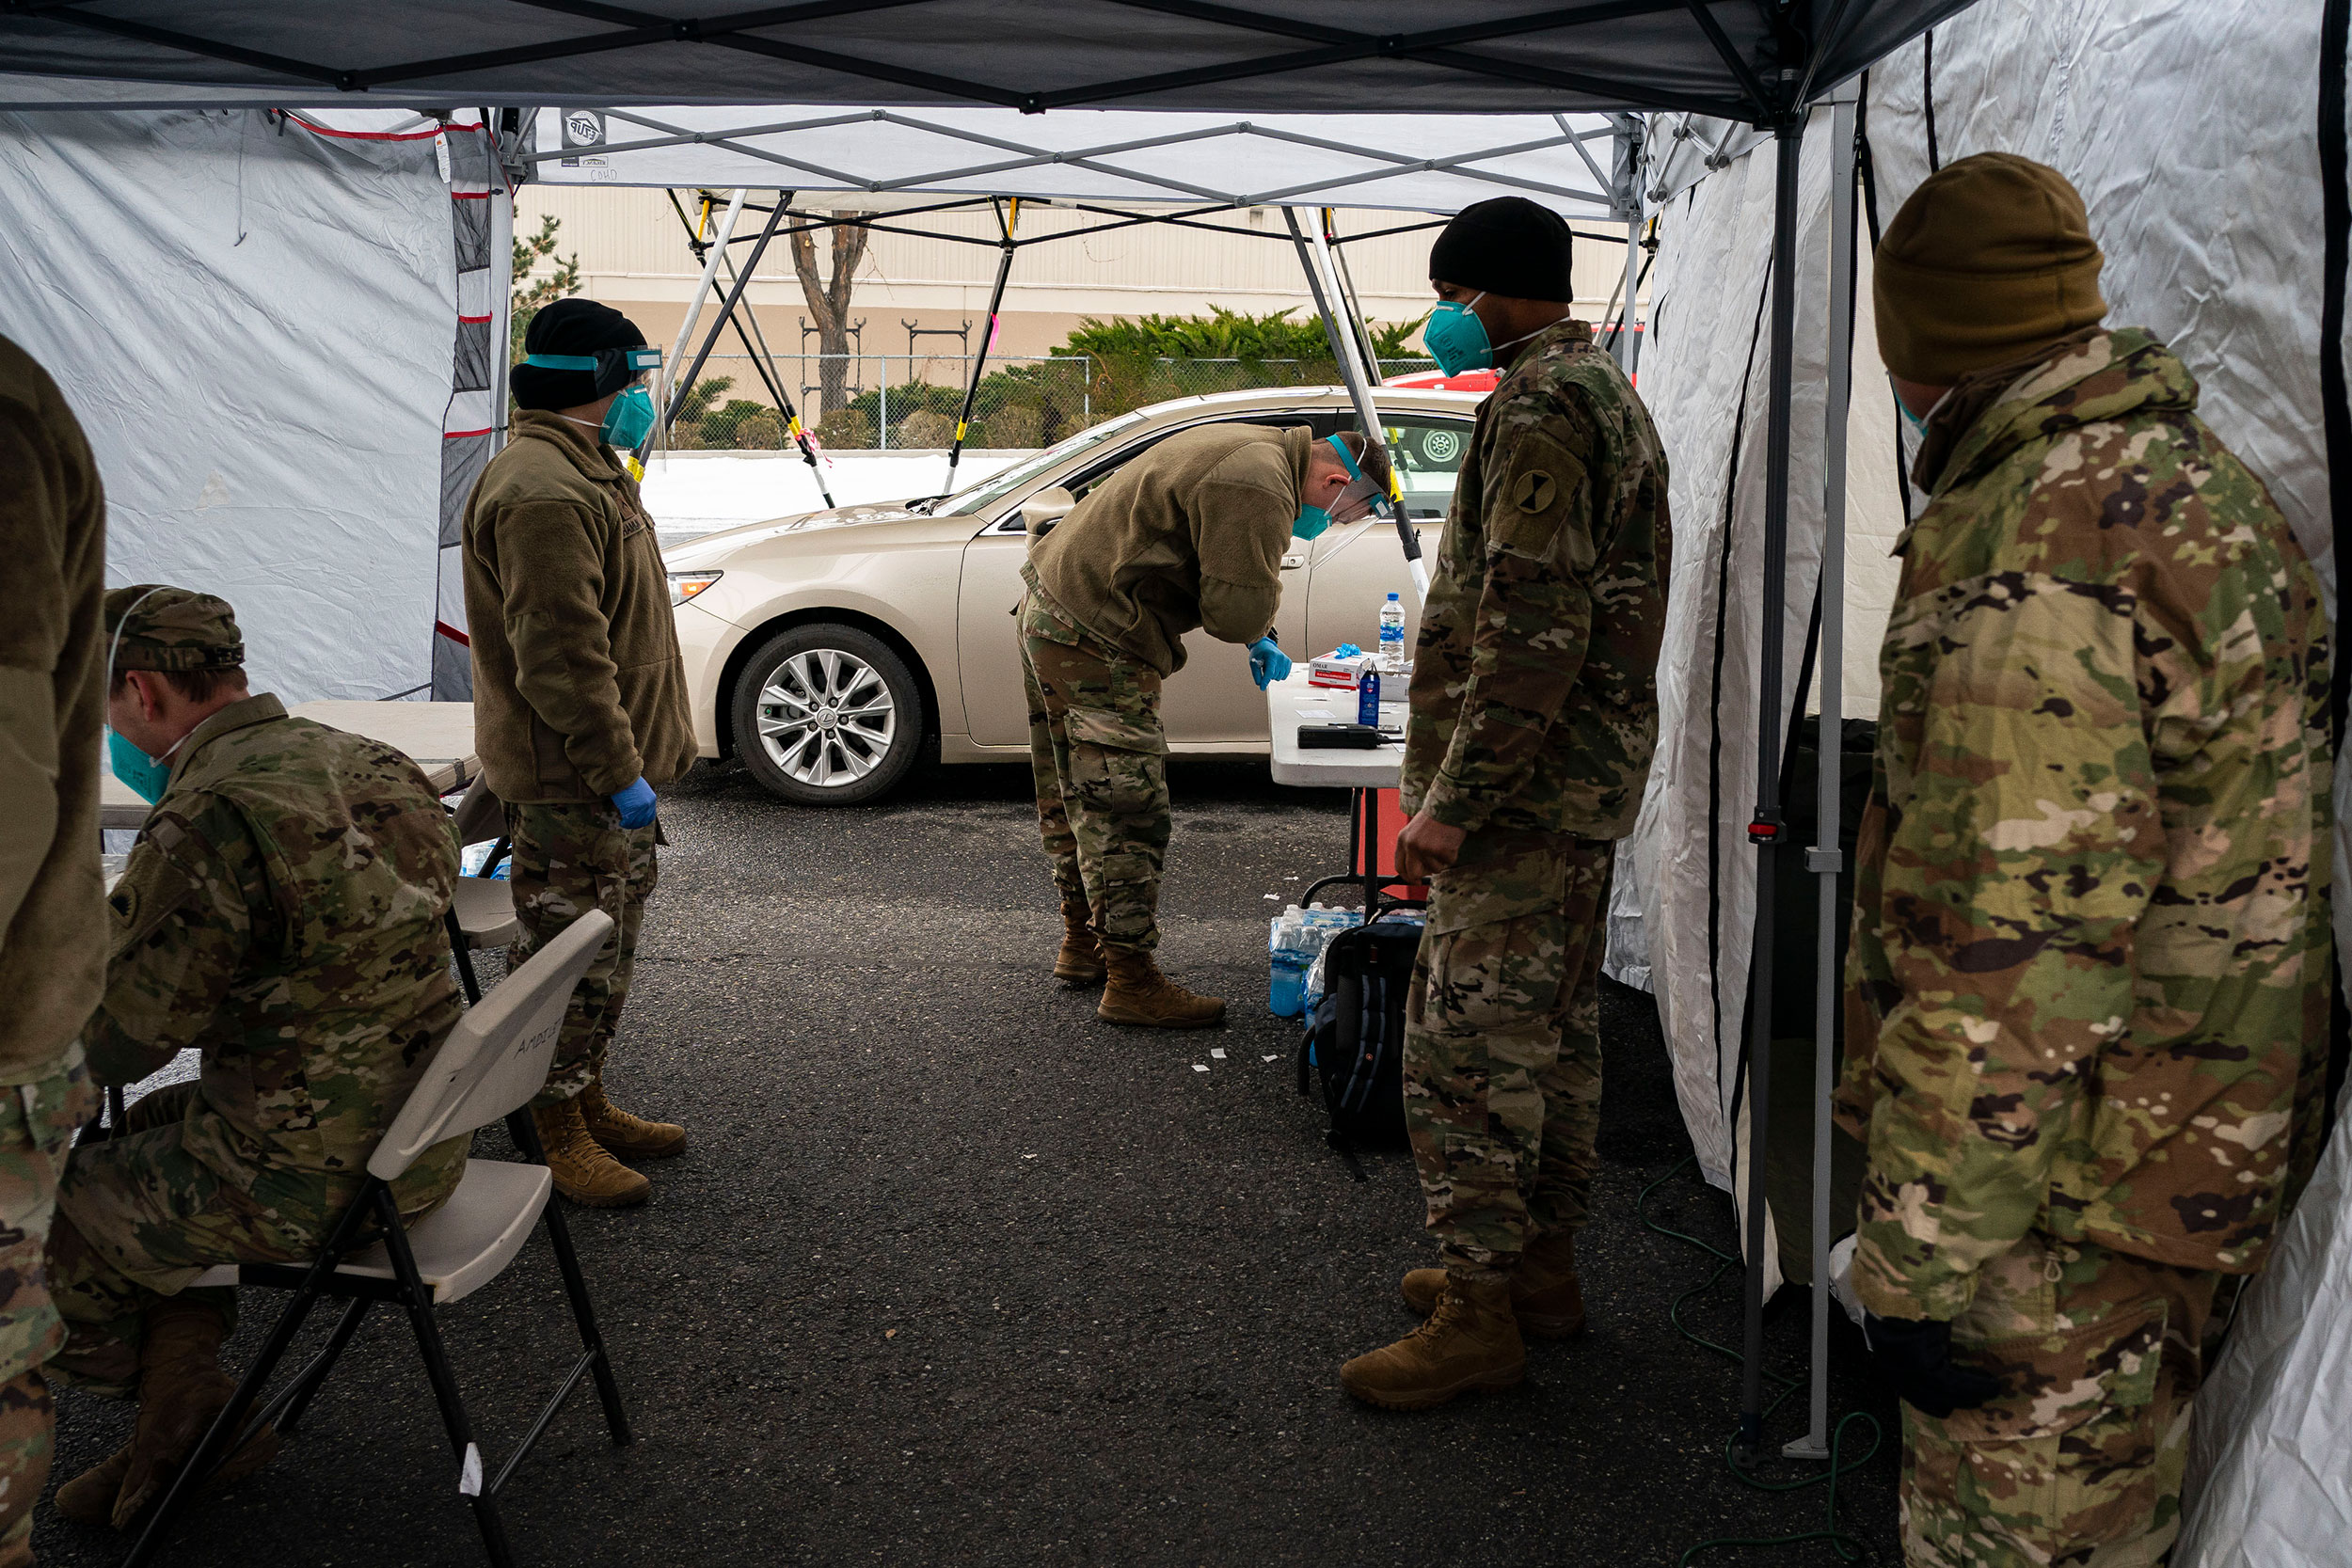 Washington National Guard personnel prepare to administer Covid-19 vaccinations in Wenatchee, Washington, on January 26.